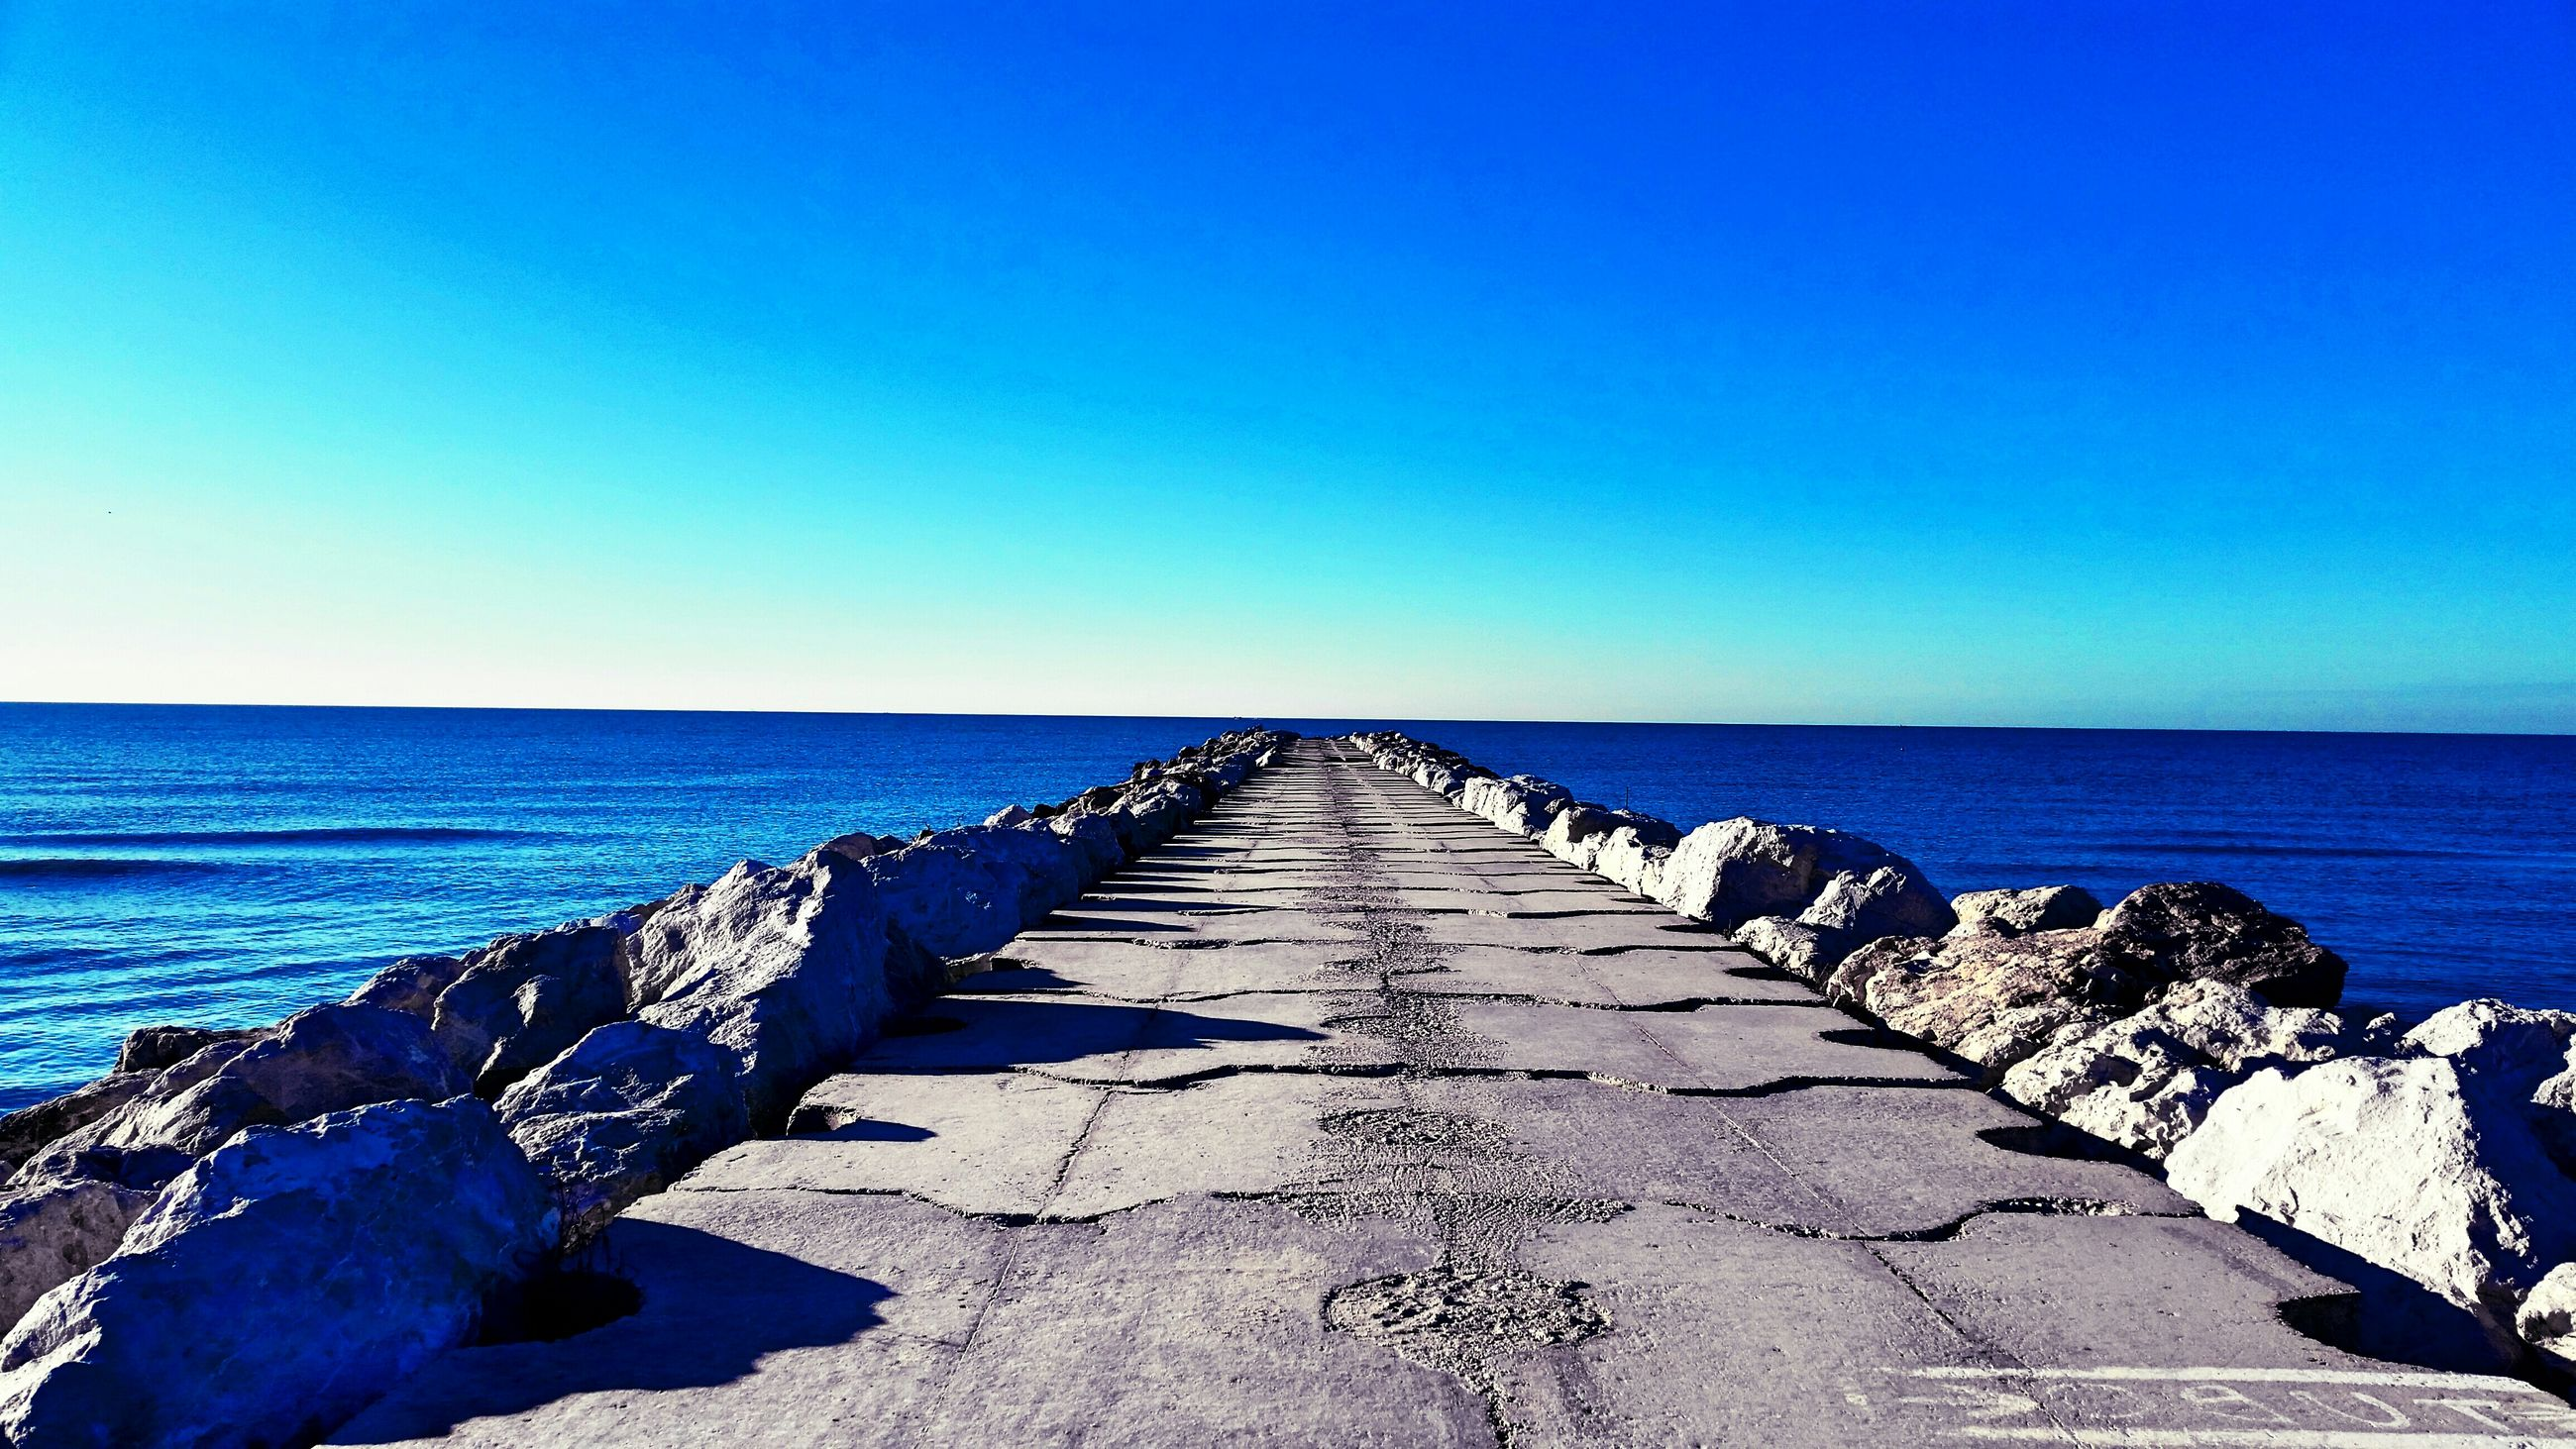 sea, clear sky, horizon over water, blue, copy space, water, tranquil scene, tranquility, the way forward, scenics, beauty in nature, nature, beach, diminishing perspective, long, idyllic, outdoors, day, shore, no people